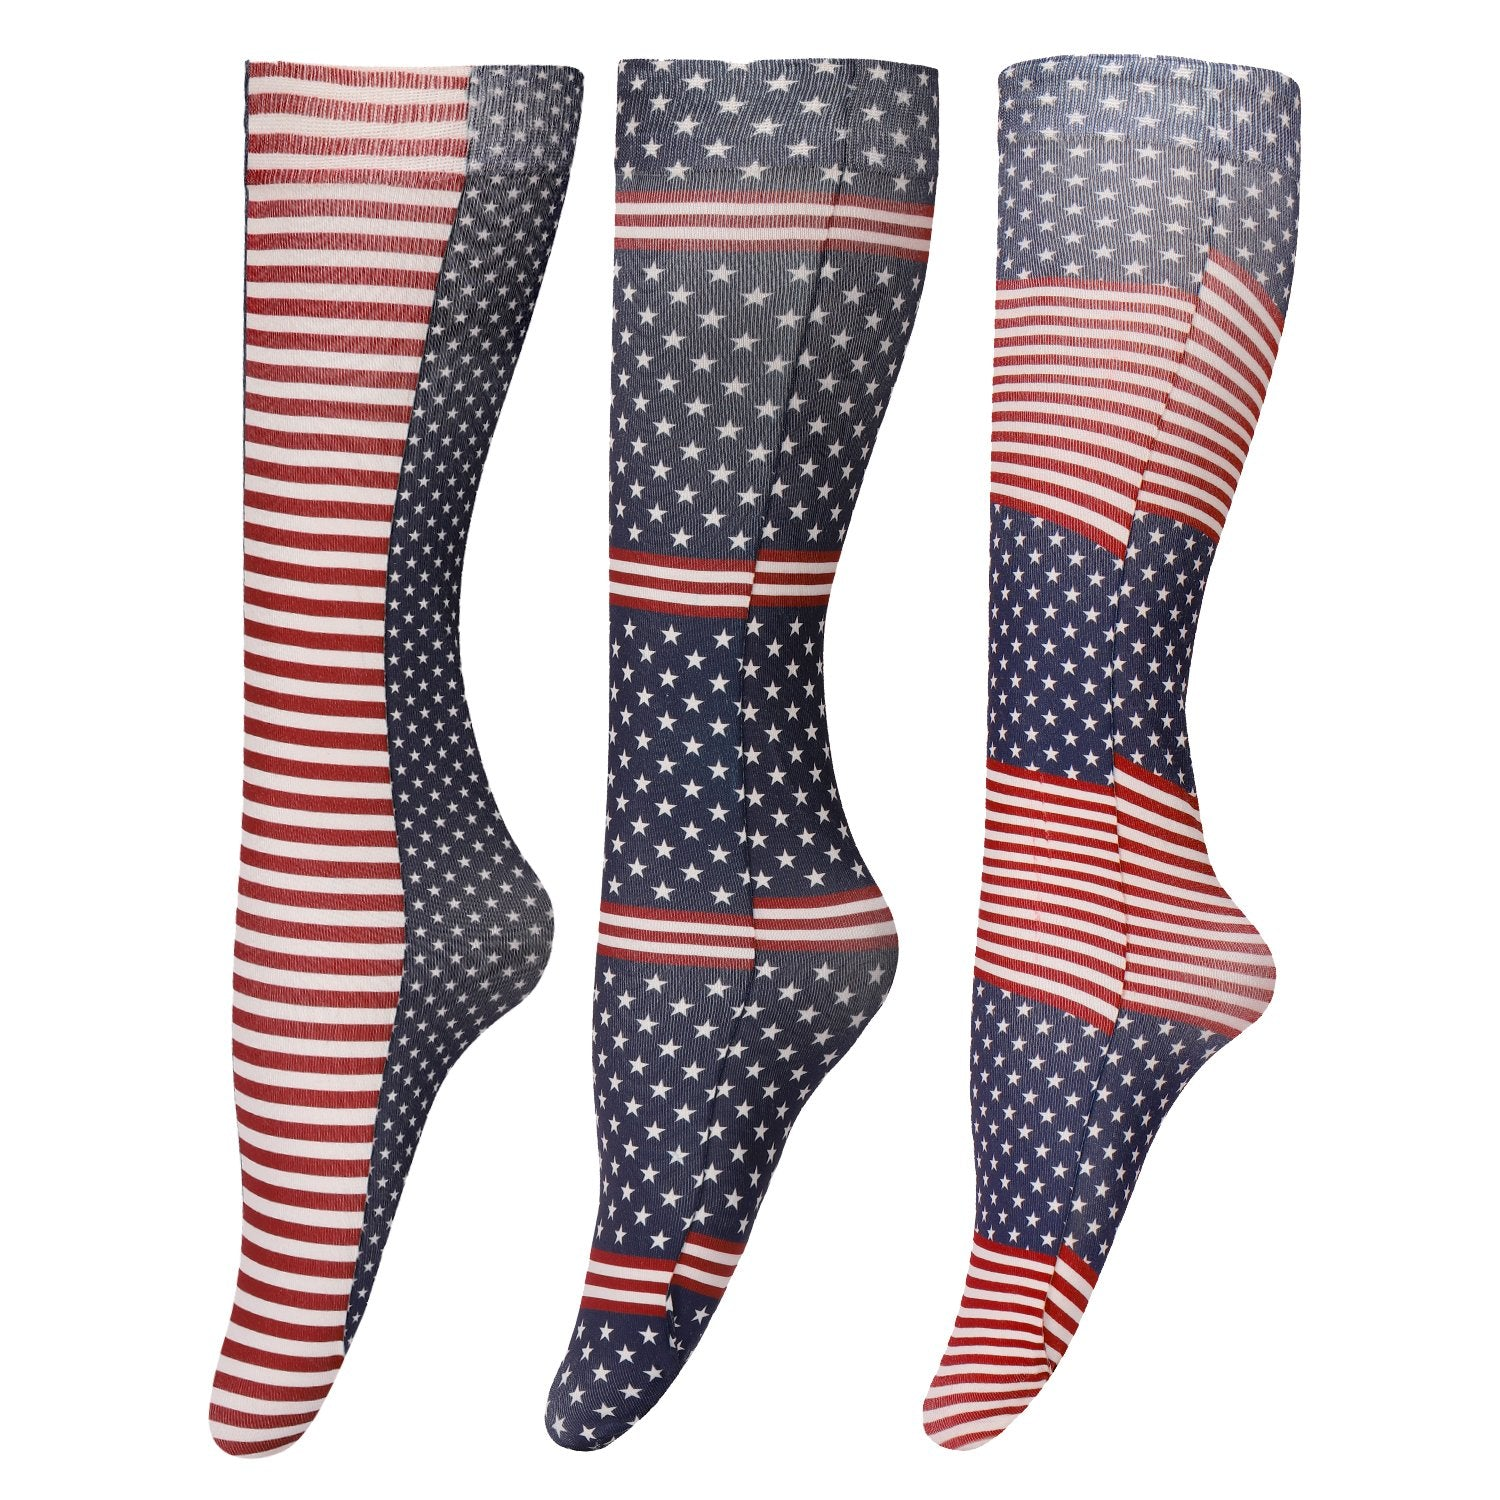 TuffRider Patriotic 3 Pack Socks_1